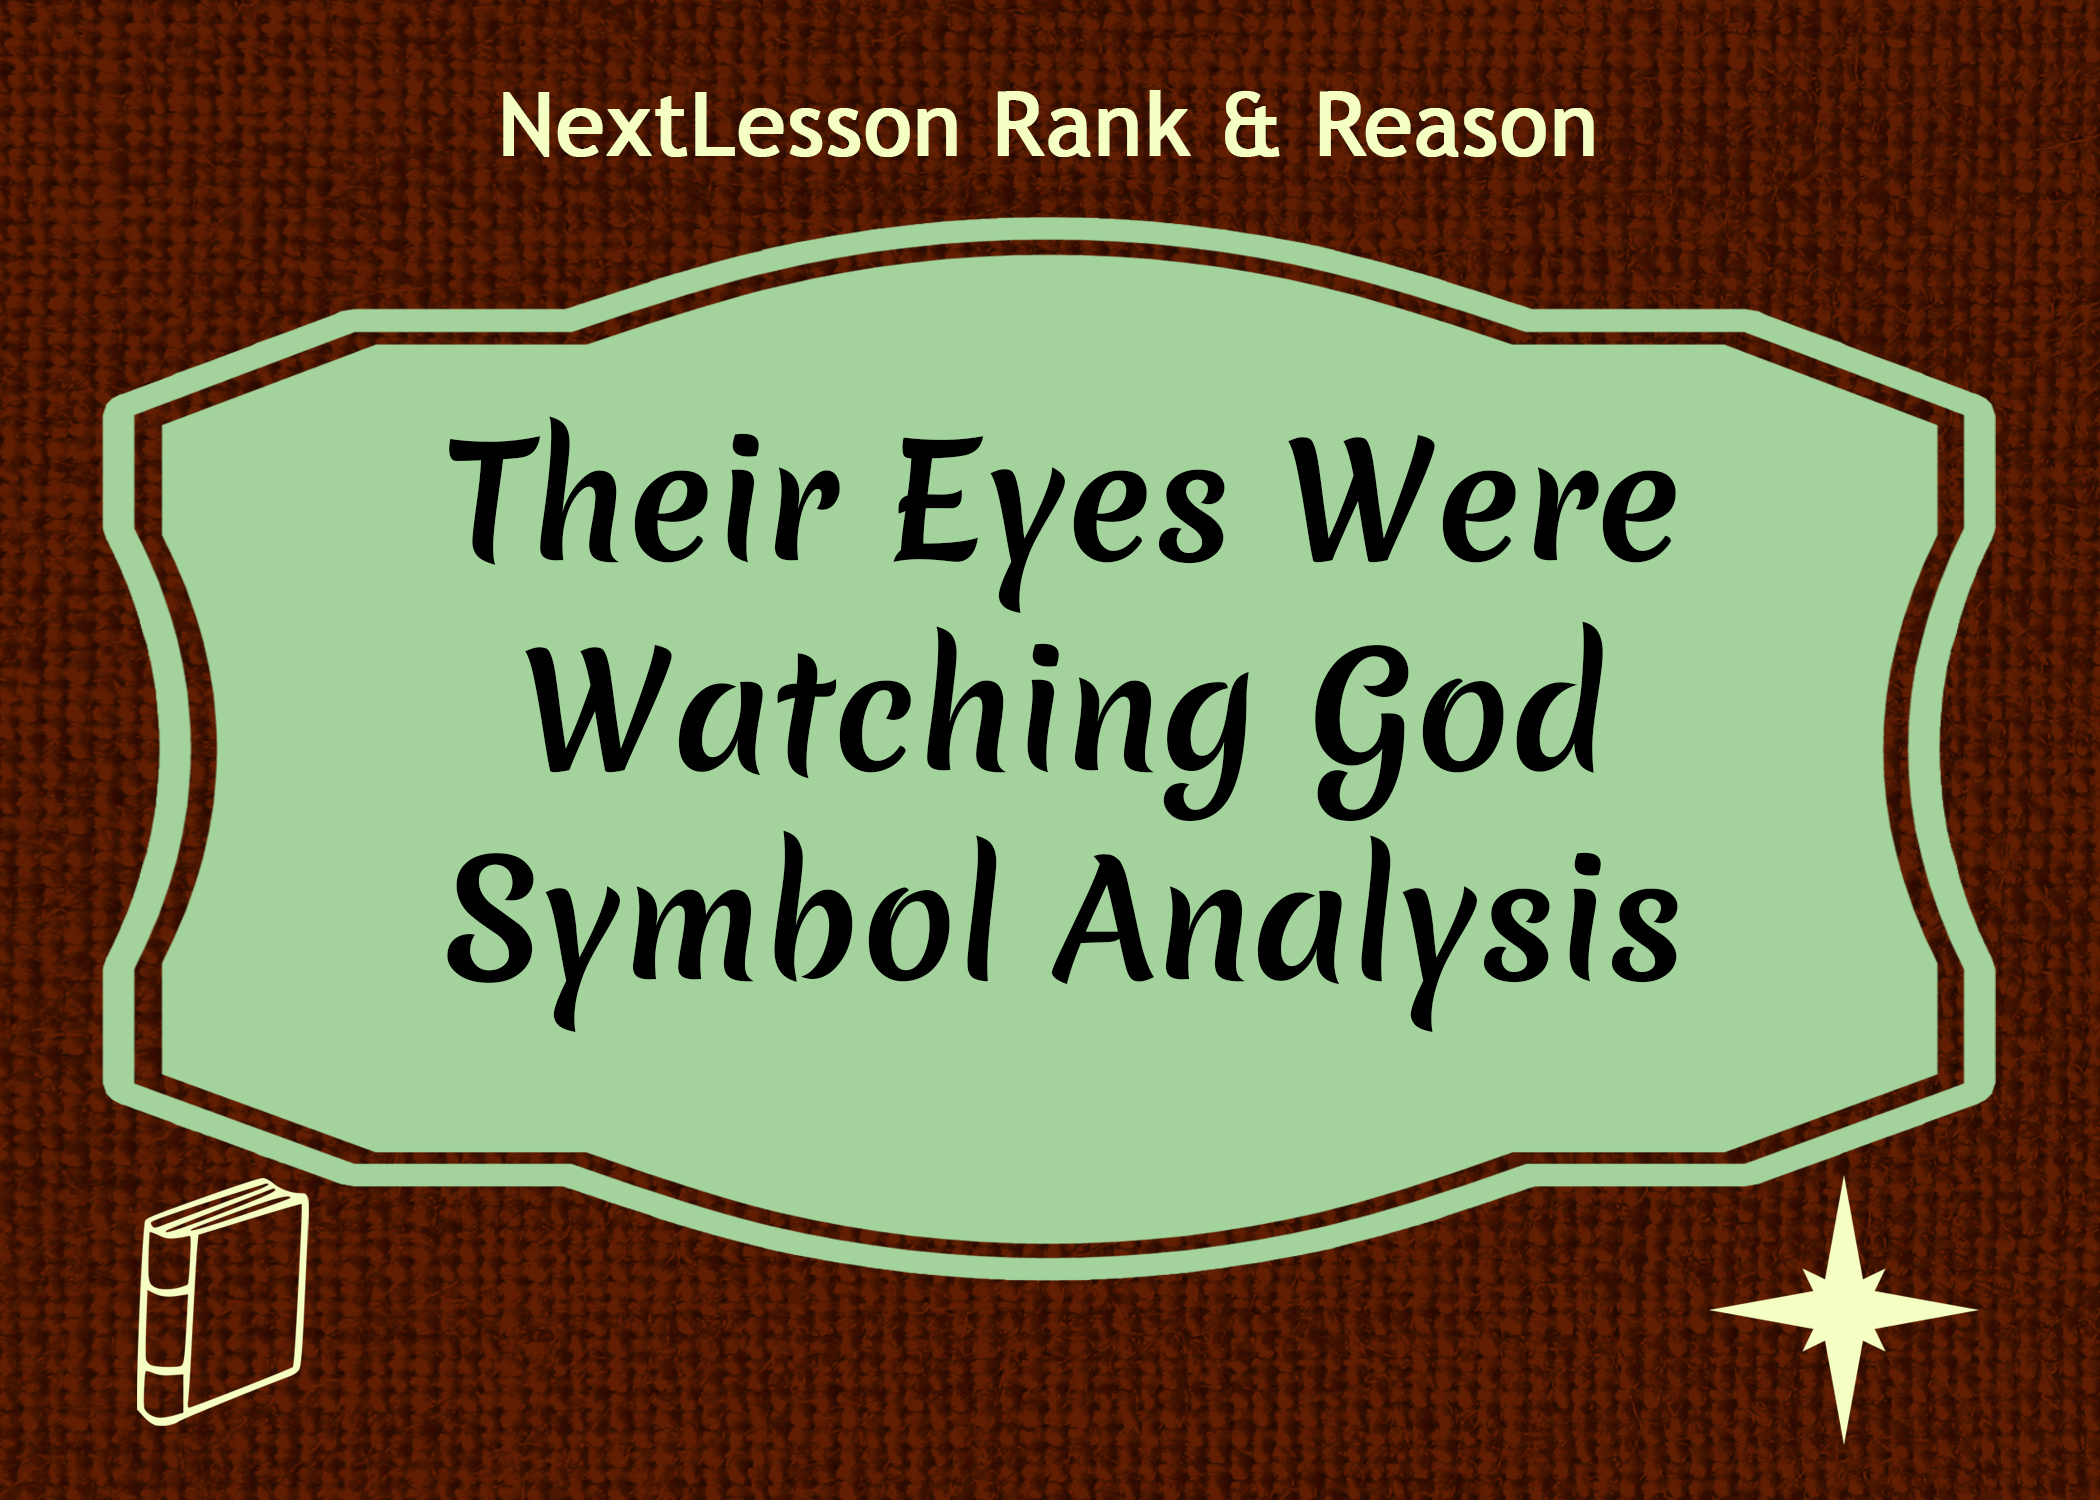 an analysis of their eyes were watching god Get free analytical essay sample on their eyes were watching god to learn how to write such kind of assignments.